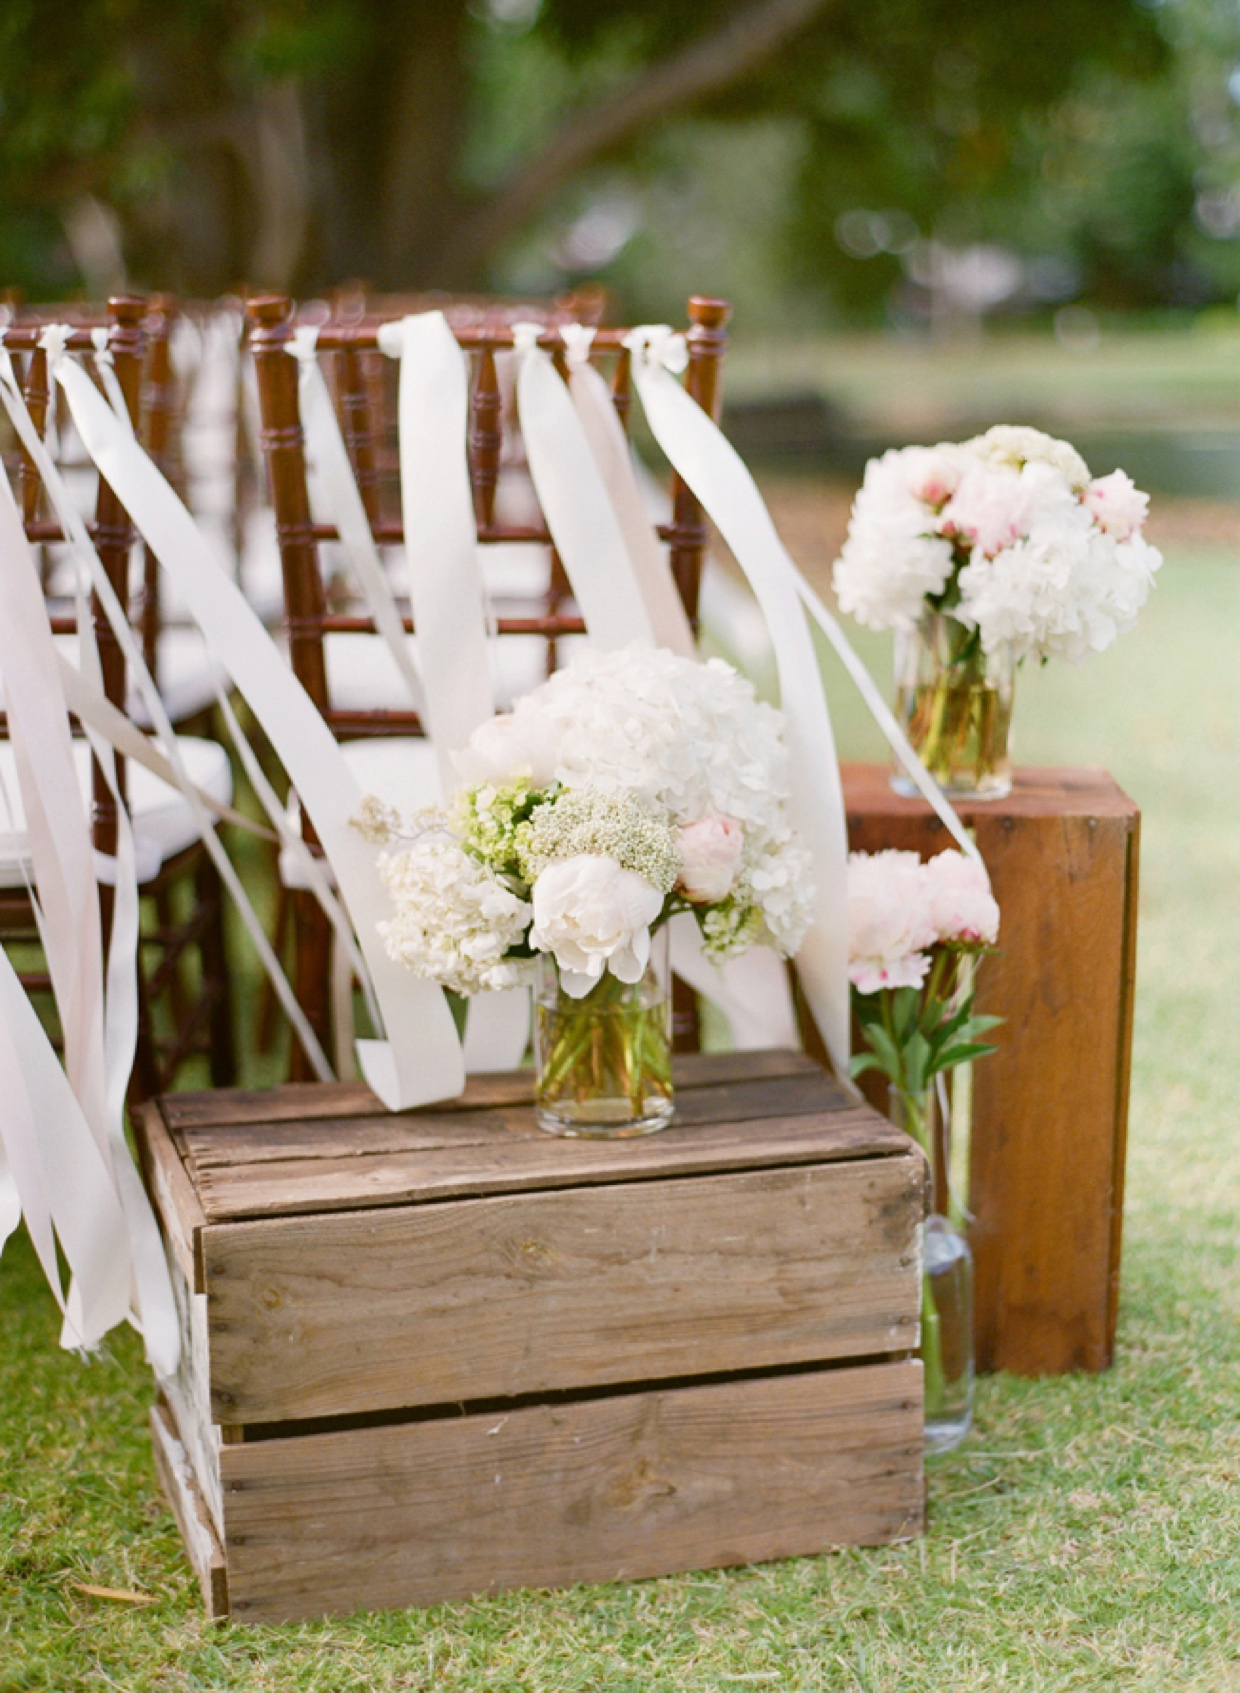 Bride + Groom Store - Wedding Ceremony Furniture Hire